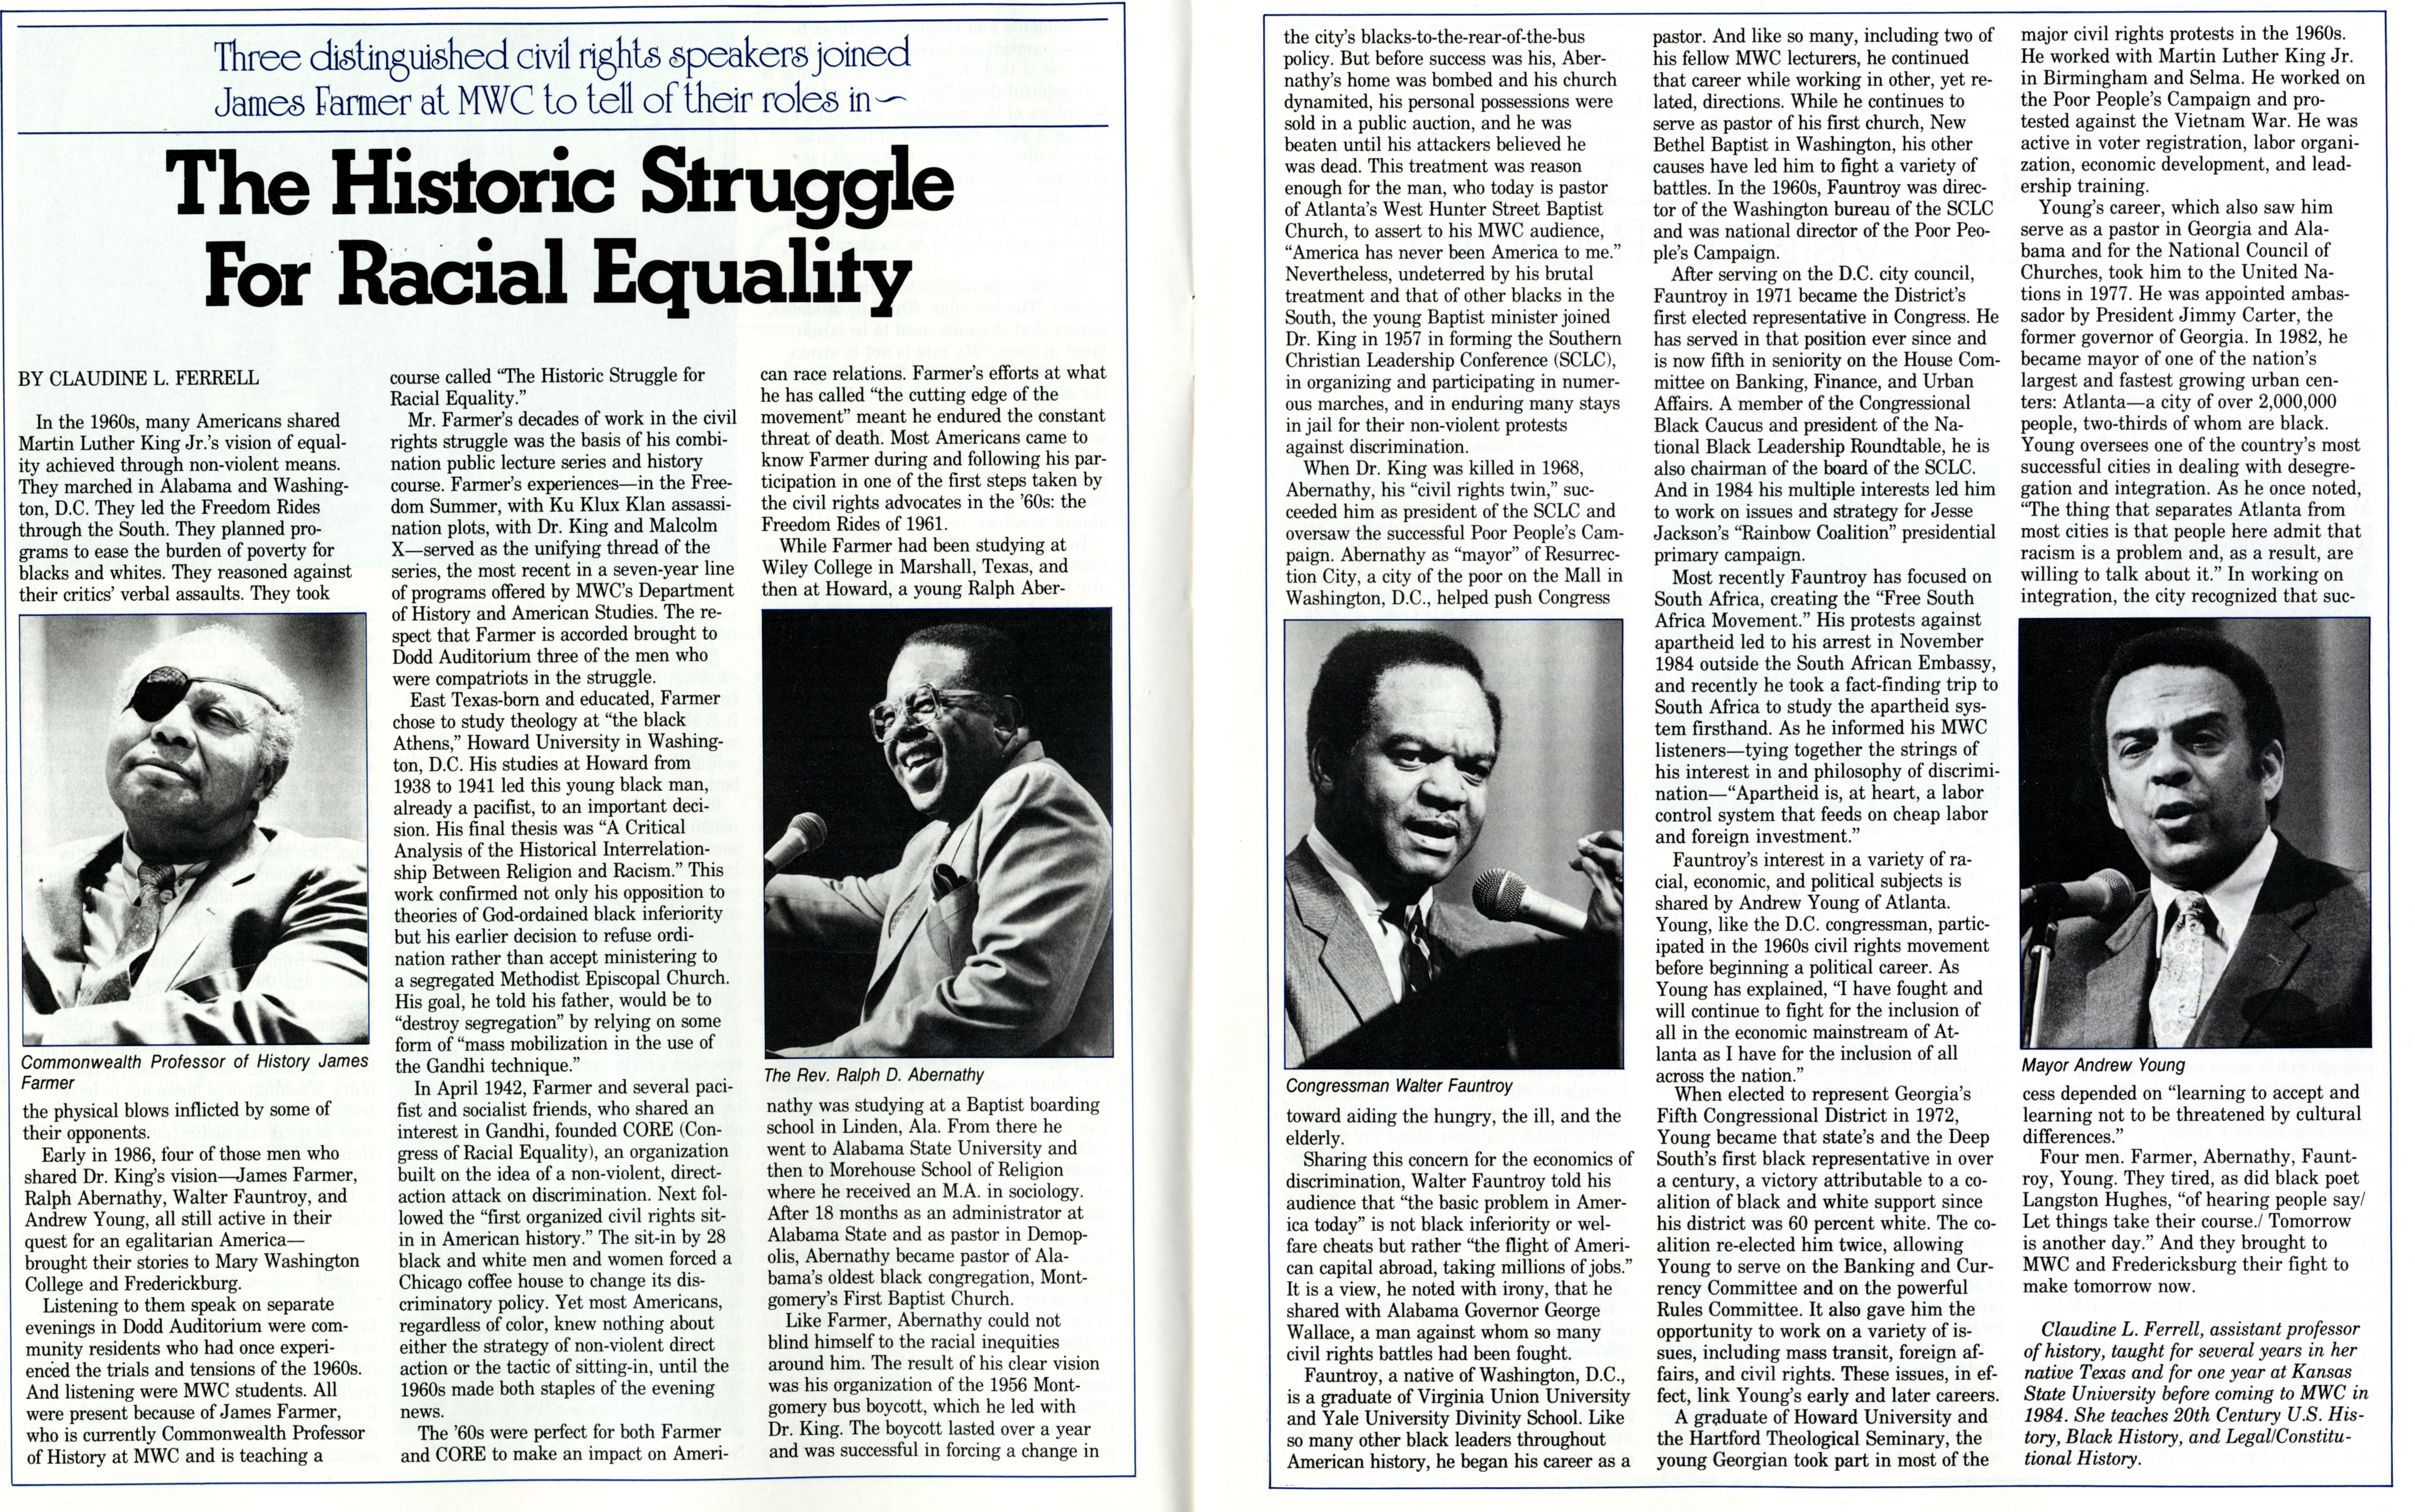 blacks a struggle for equalty essay In 1901 the naacp was form to fight for equal rights for african american and has been a key in reshaping governmental and policies concerning equality for all black activists and white activists alike pursued the struggle against racial segregation in the united states by both political and legal means which created a number of setbacks.